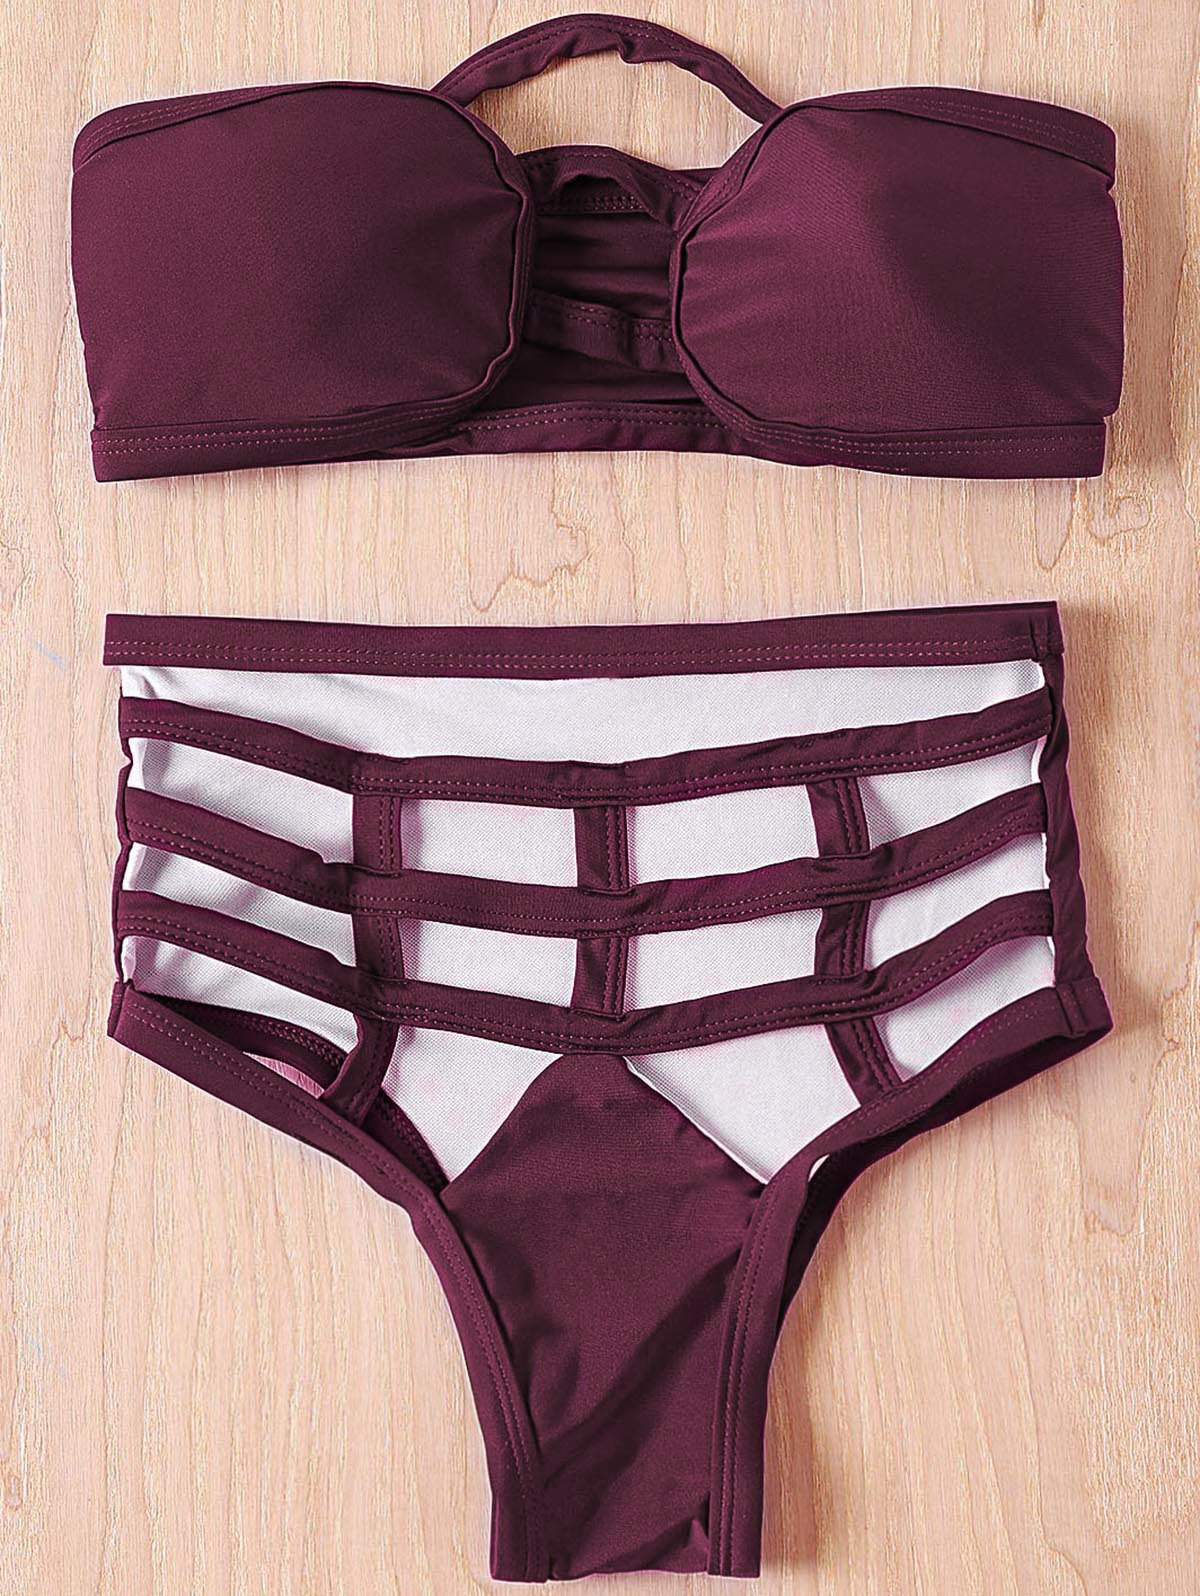 Chic Strapless Sleeveless Hollow Out Solid Color Women's Bikini Set - PURPLISH RED S